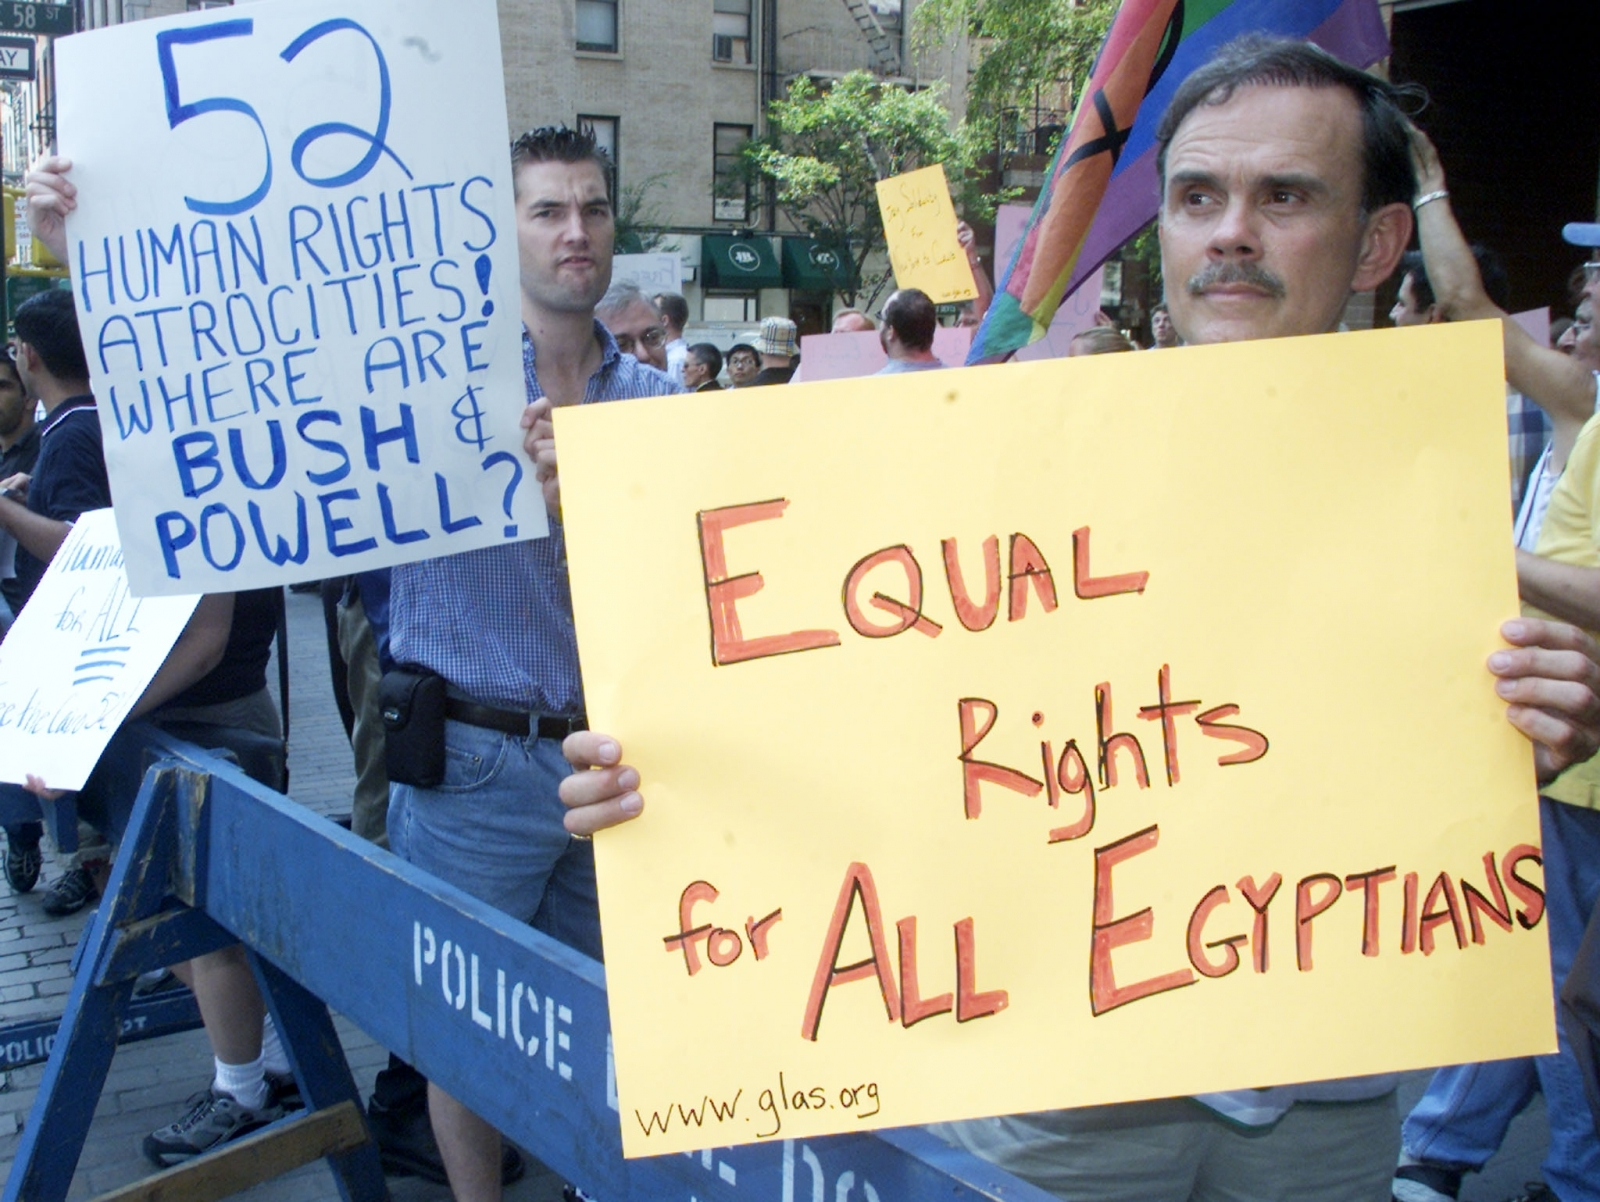 Activists protest against gay arrests in Egypt